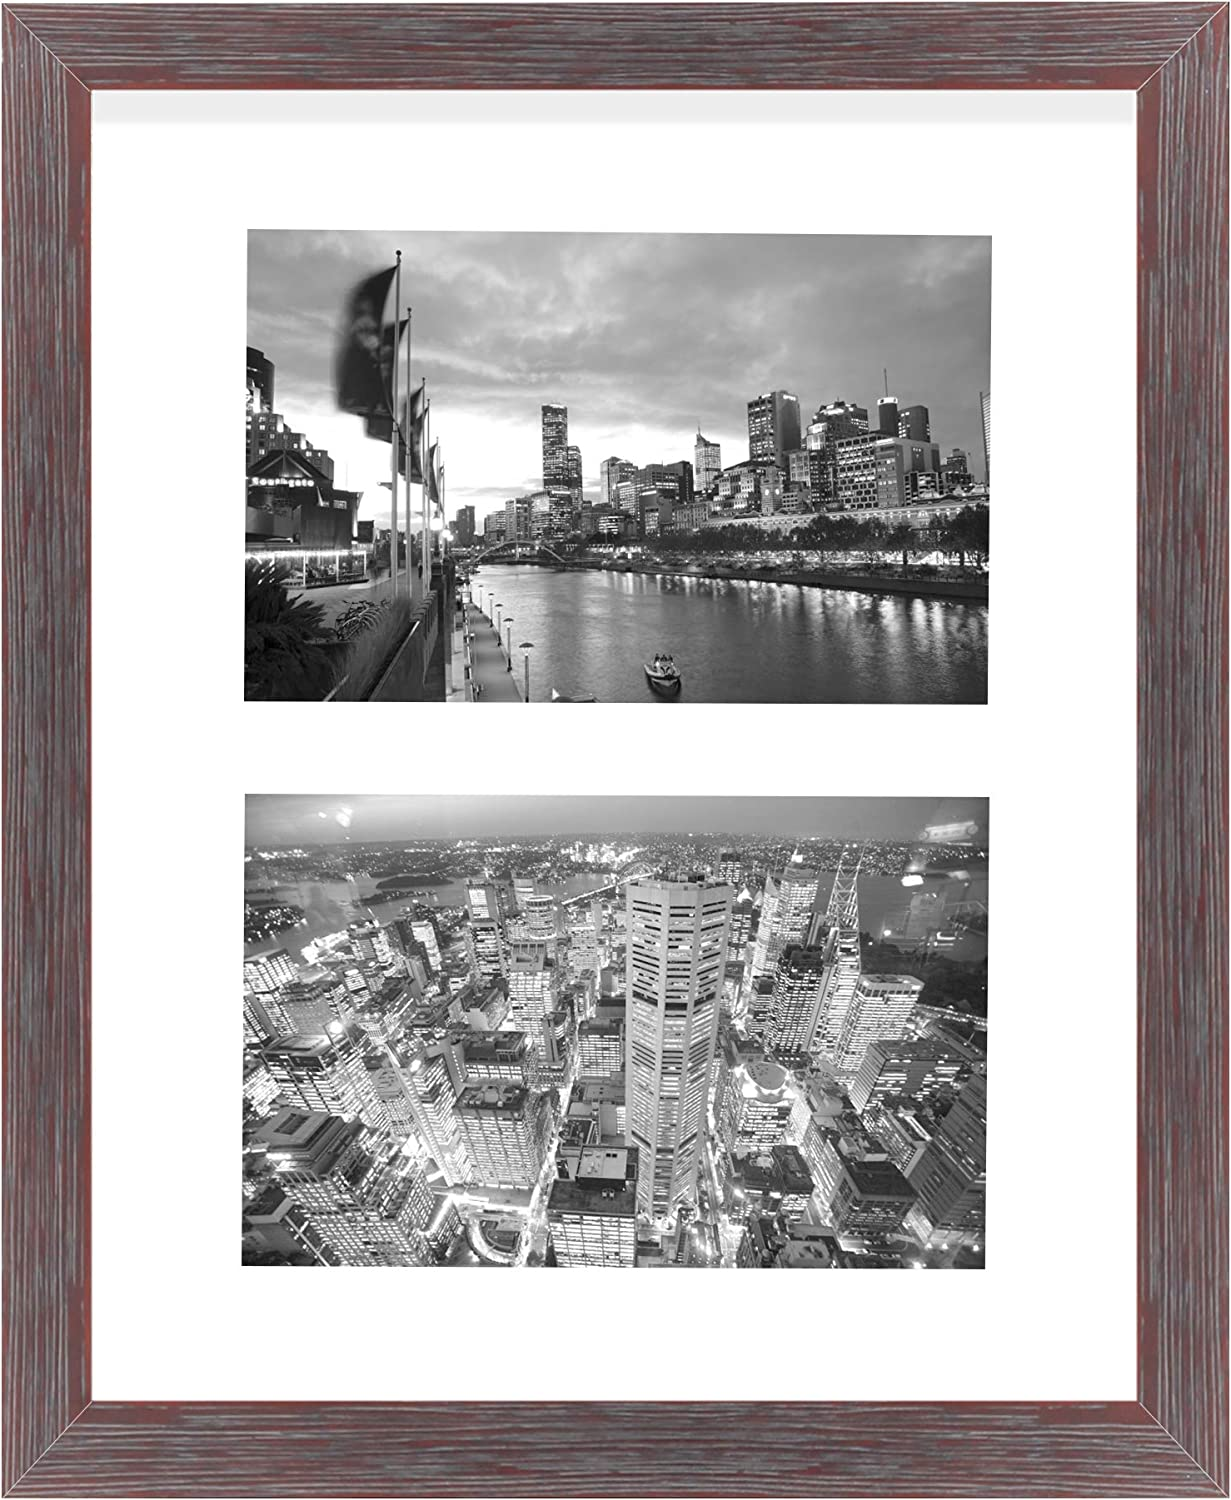 Golden State Art, 8x10 Distressed Red Collage Picture Frame - White Mat for (2) 4x6 Pictures - Wood Molding - Easel Stand for Tabletop - D-Rings for Wall Display - Great for Homes, Offices, Events